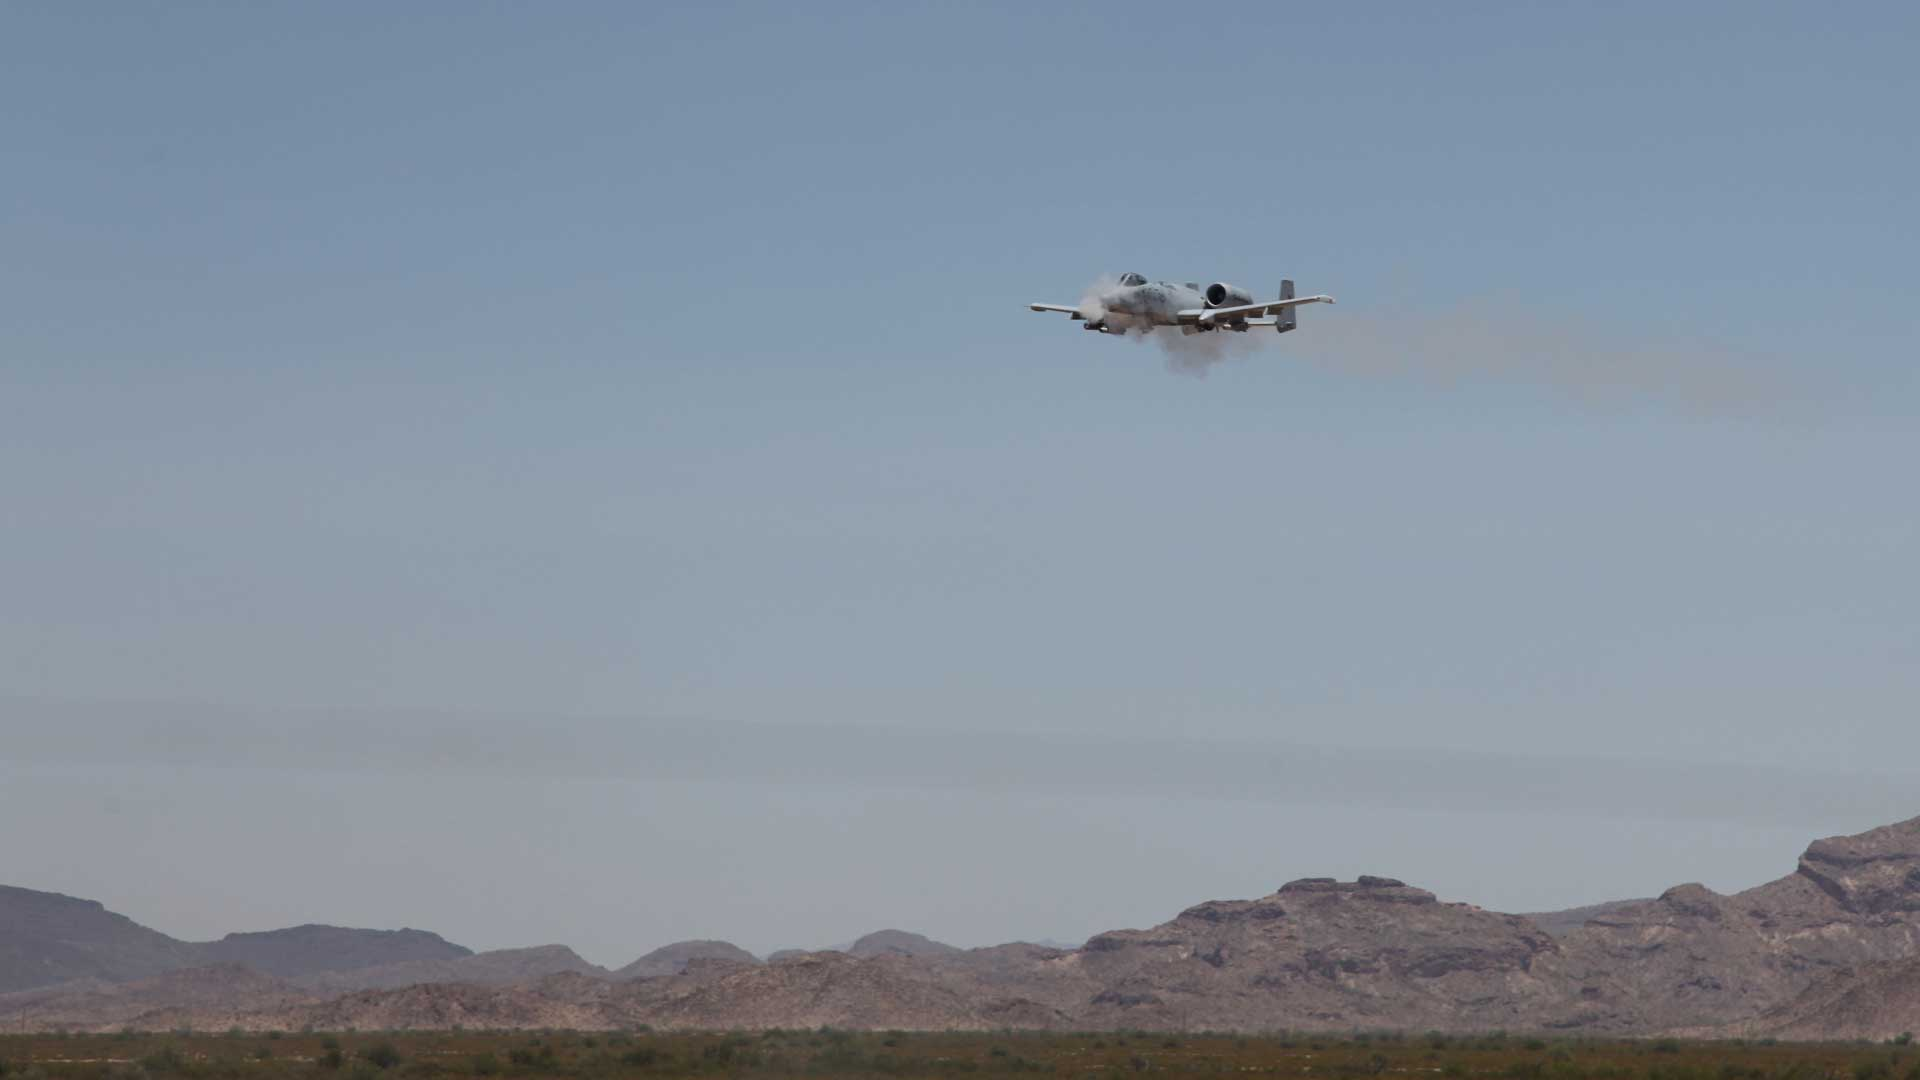 An A-10 firing at the Barry Goldwater Range in Gila Bend, AZ during Hawgsmoke 2016.